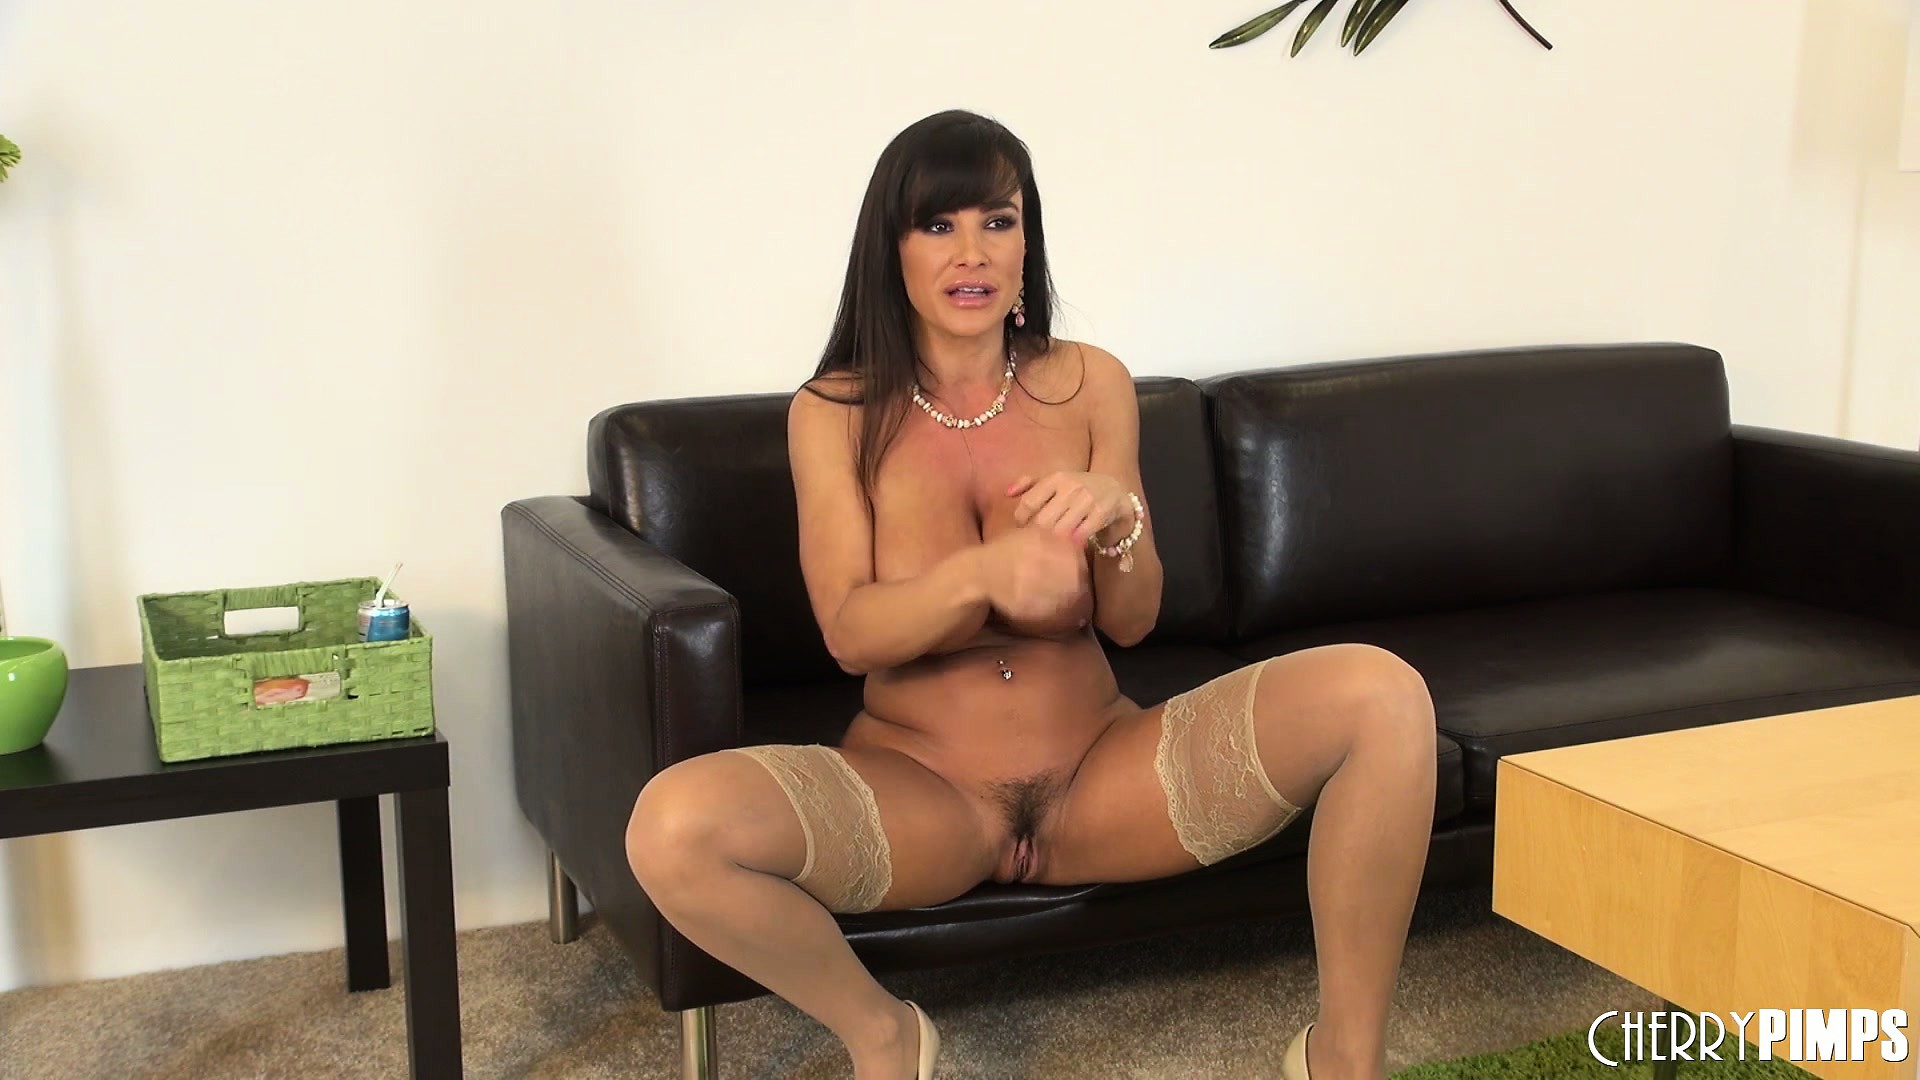 Porn Tube of Lisa Ann Spreads Her Legs While Wearing A Pair Of Nylon Stockings